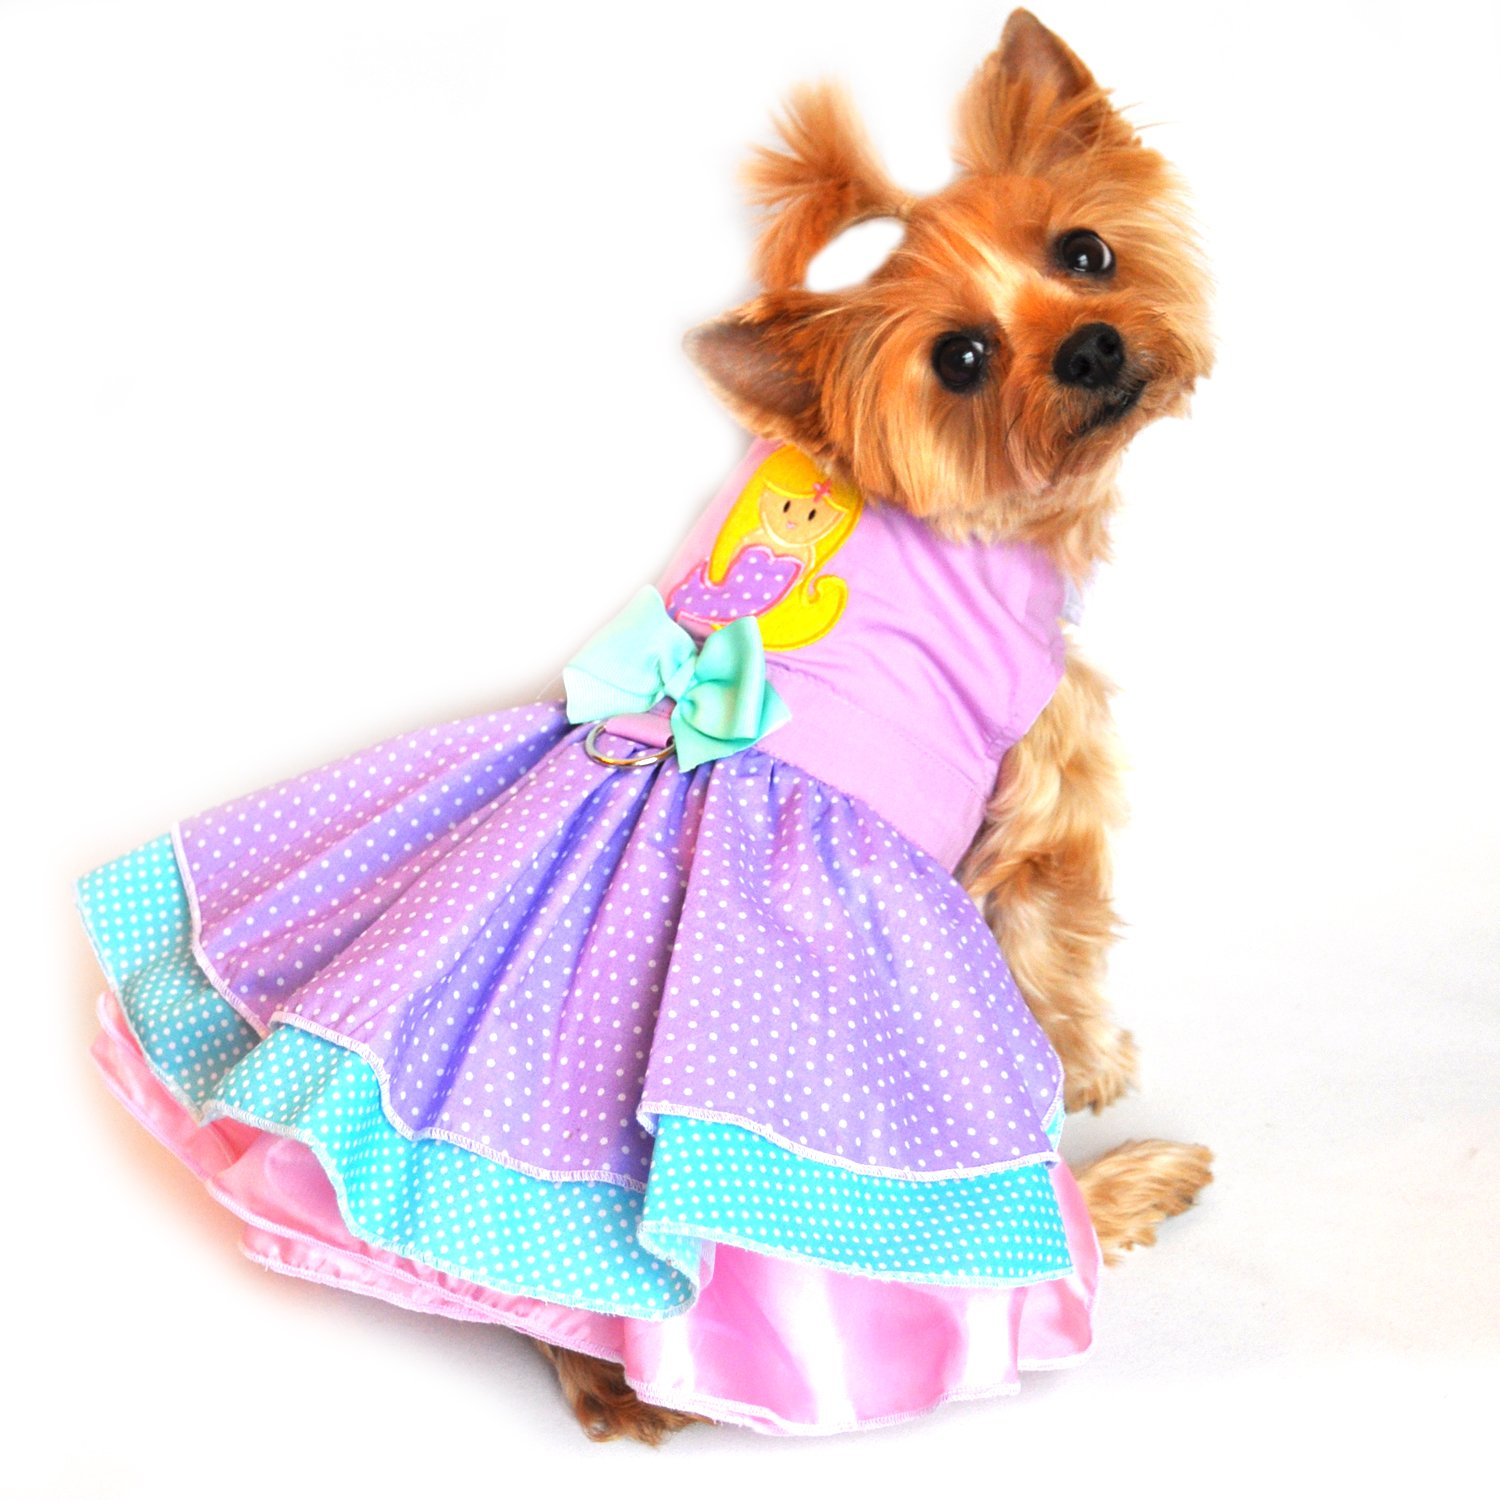 Doggie Design Lavender Mermaid/Polka Dot Party Harness Dress for small dogs in Size Medium (Chest 16-19